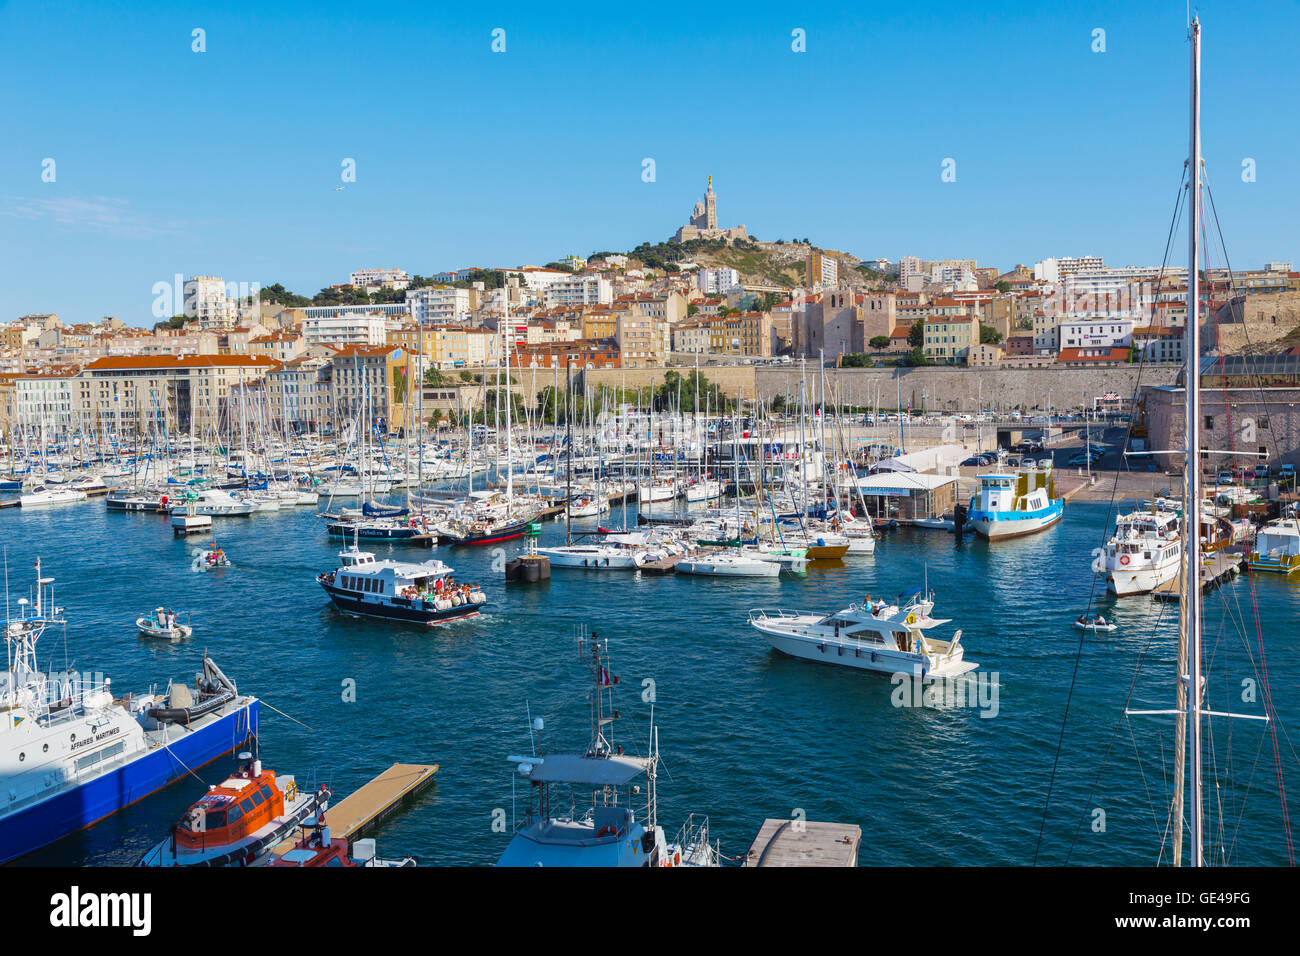 Marseille, Provence-Alpes-Côte d'Azur, France.  View across Vieux-Port, the Old Port, to the 19th century - Stock Image